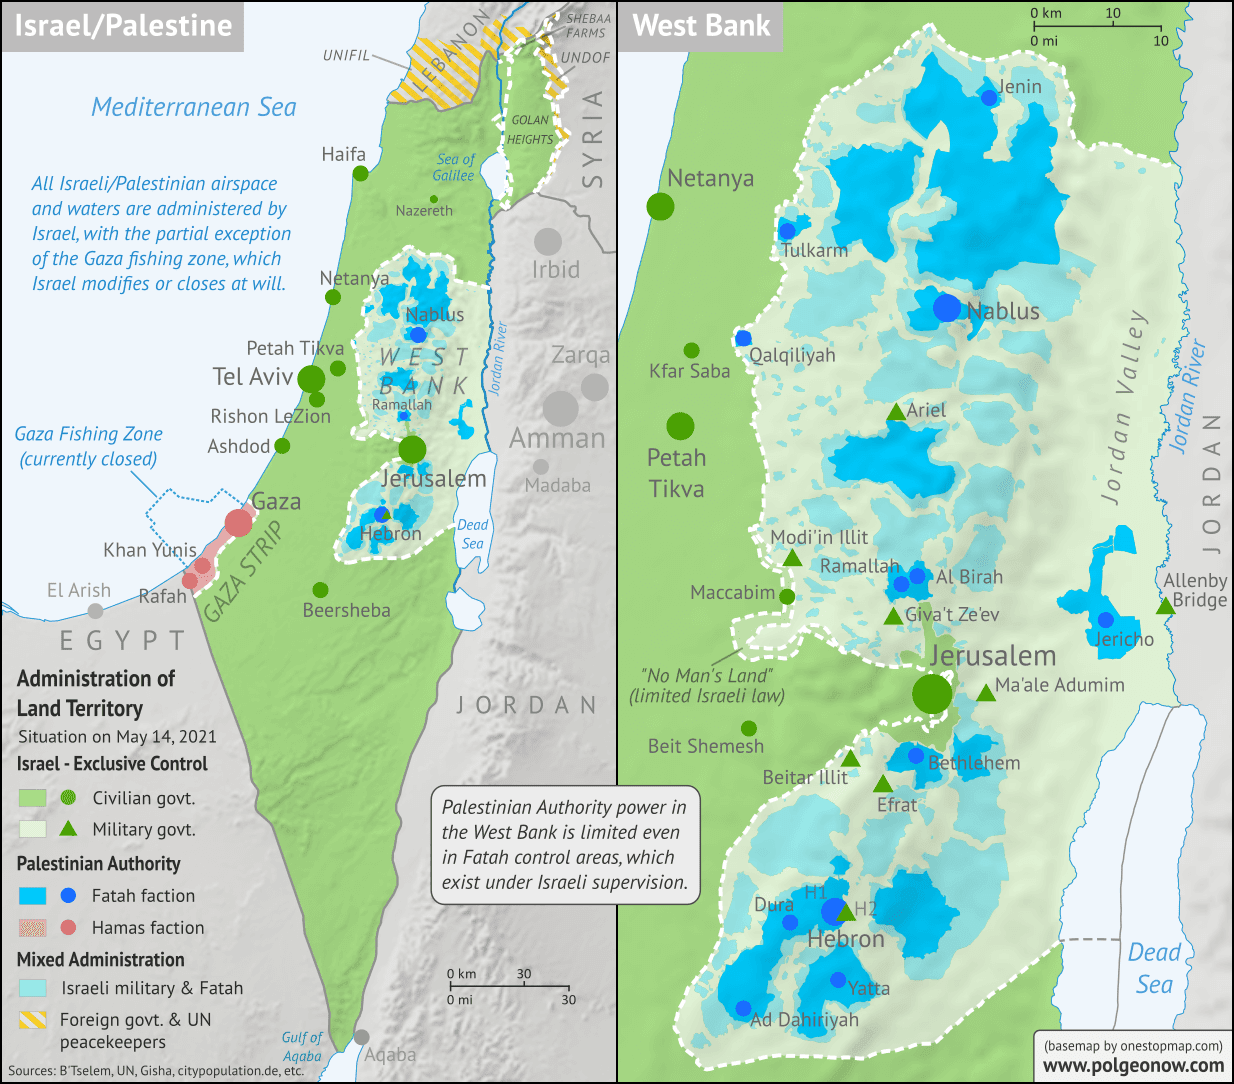 Map of who controls Palestine and Israel's claimed territories today (May 14, 2021), as Gaza Strip violence continues to escalate? Israeli and Palestinian Authority administration (Fatah and Hamas factions indicated separately). Also file under: Palestine controlled area map. Includes bigger West Bank map (Areas A, B, C). Map also includes Gaza Strip, Golan Heights, major cities and Israeli settlements, UN peacekeeper deployments (UNIFIL and UNDOF), no man's land, Golan Heights buffer zone (area of separation, AOS), and Shebaa Farms. Colorblind accessible.